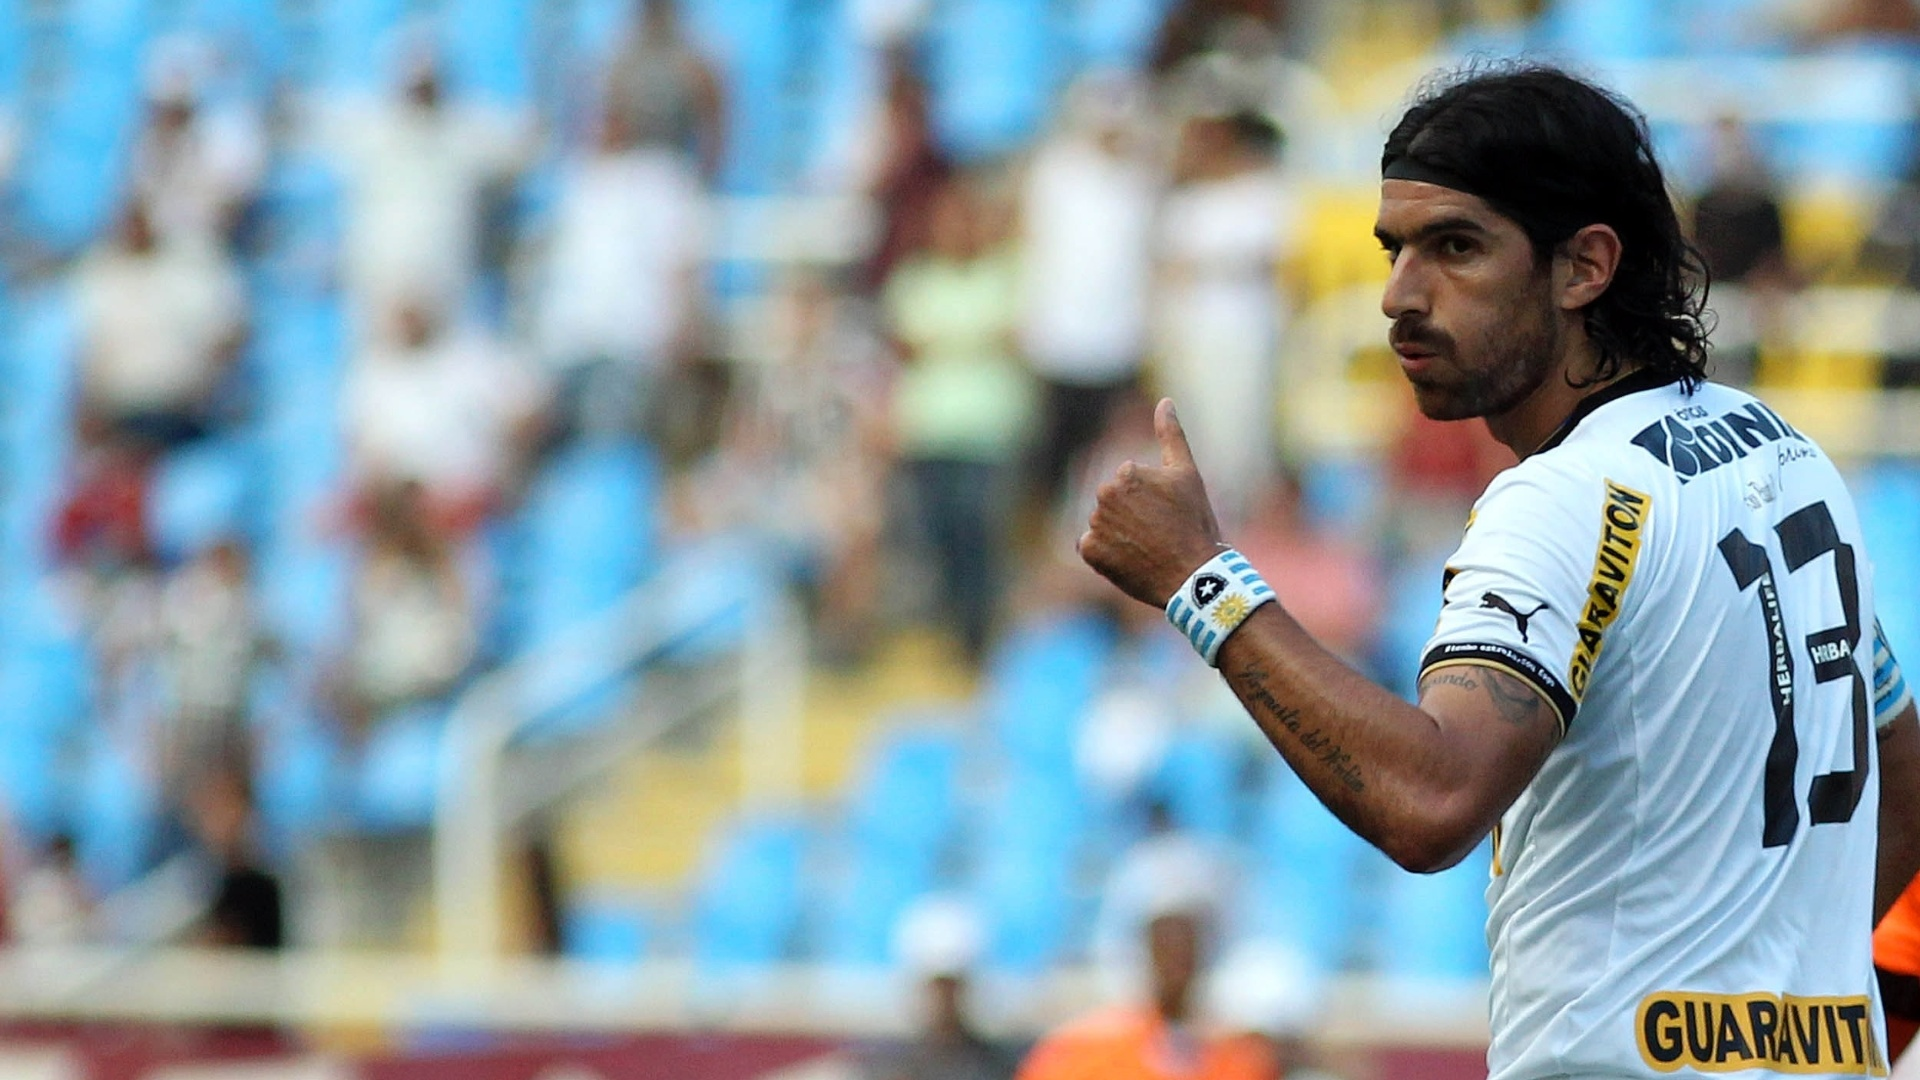 O atacante Loco Abreu, do Botafogo, acena durante a final contra o Fluminense